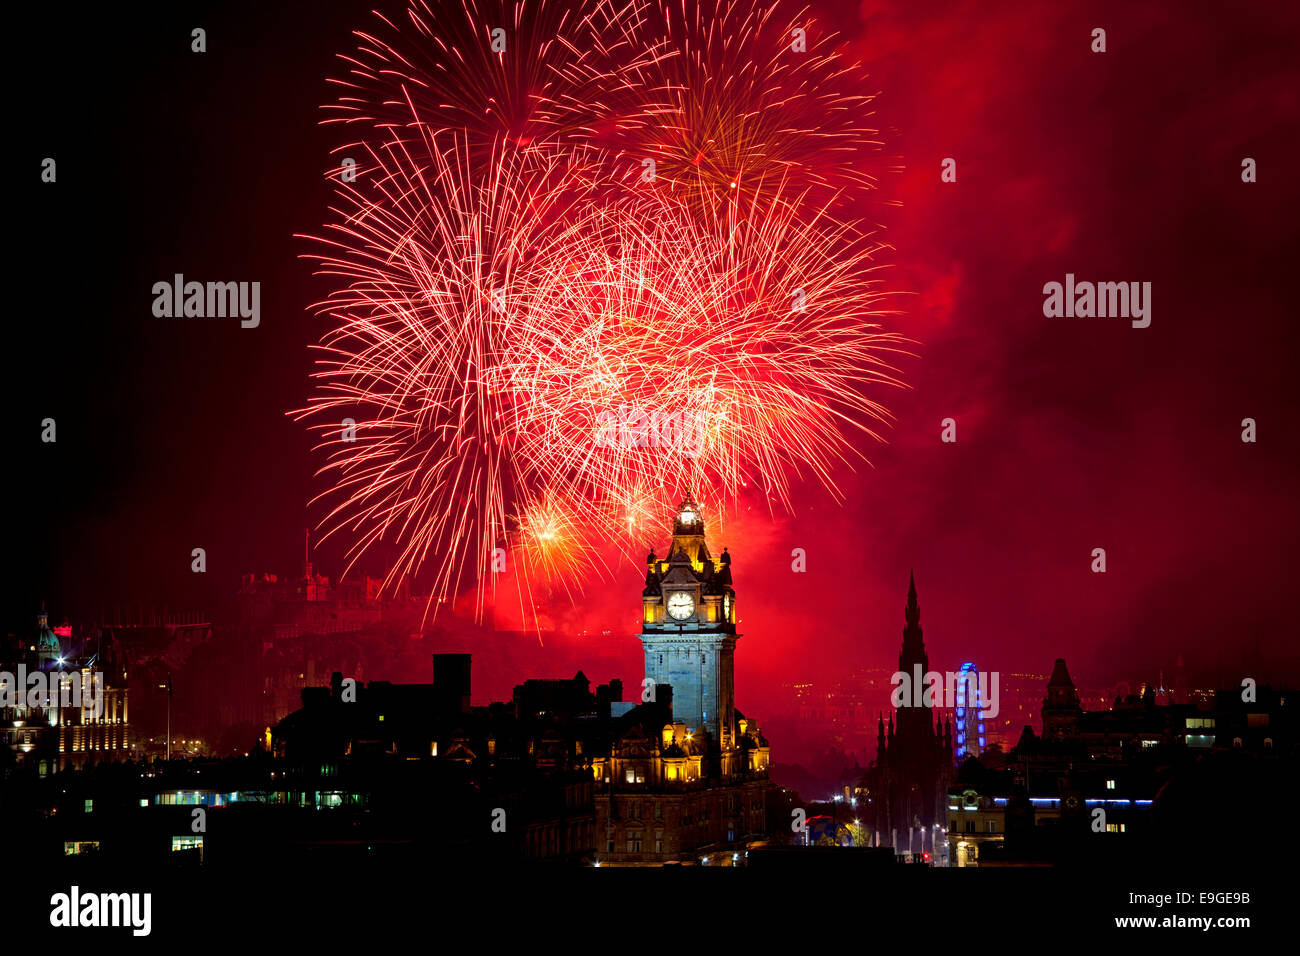 Edinburgh Festival Fireworks 2014 from the castle, viewed from Calton Hill, Scotland, UK - Stock Image